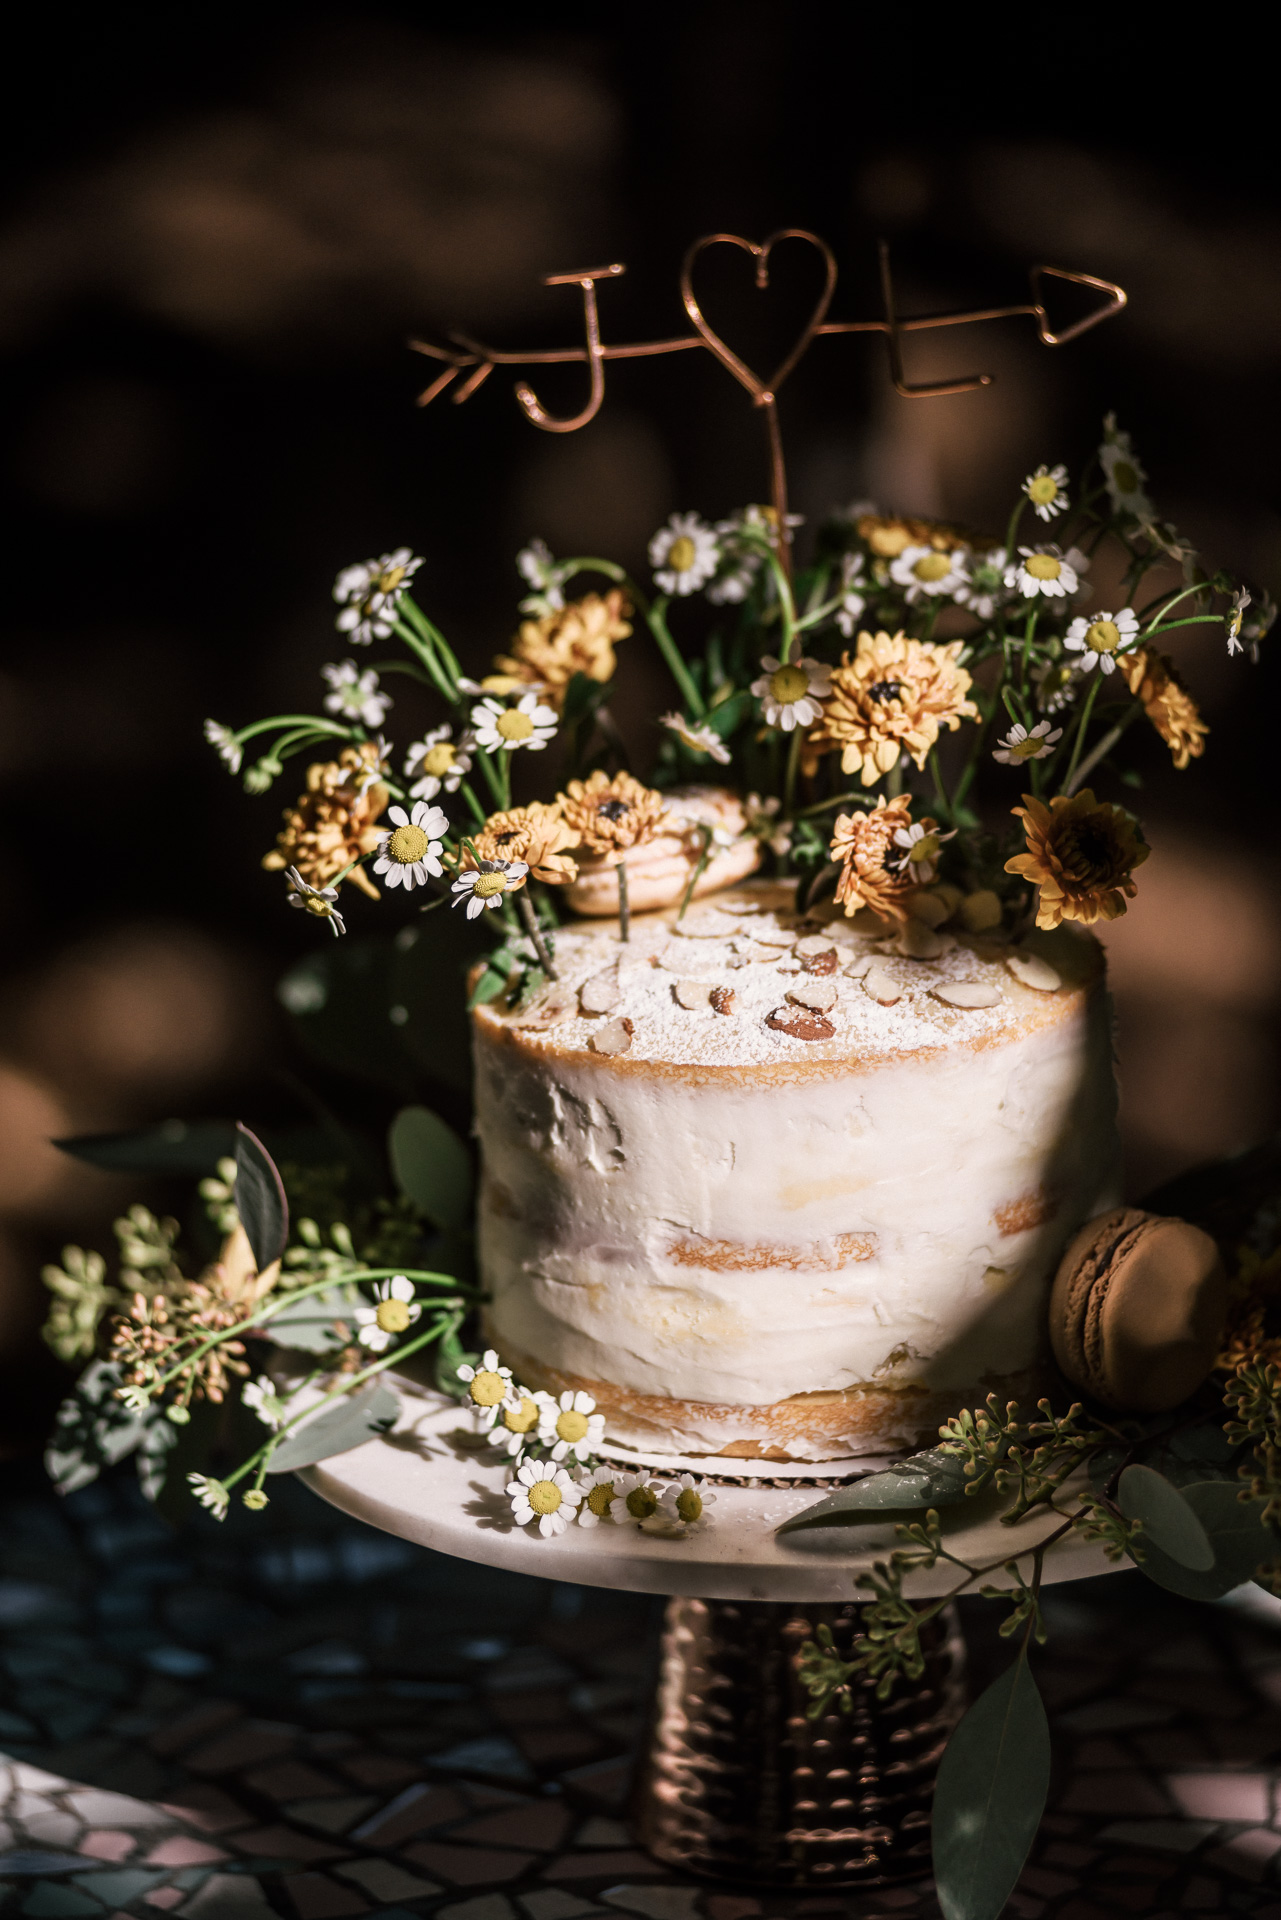 adorable wedding cake with daisys and flowers topped with almonds shot by wedding photographer at the charming St. George Hotel in Volcano California